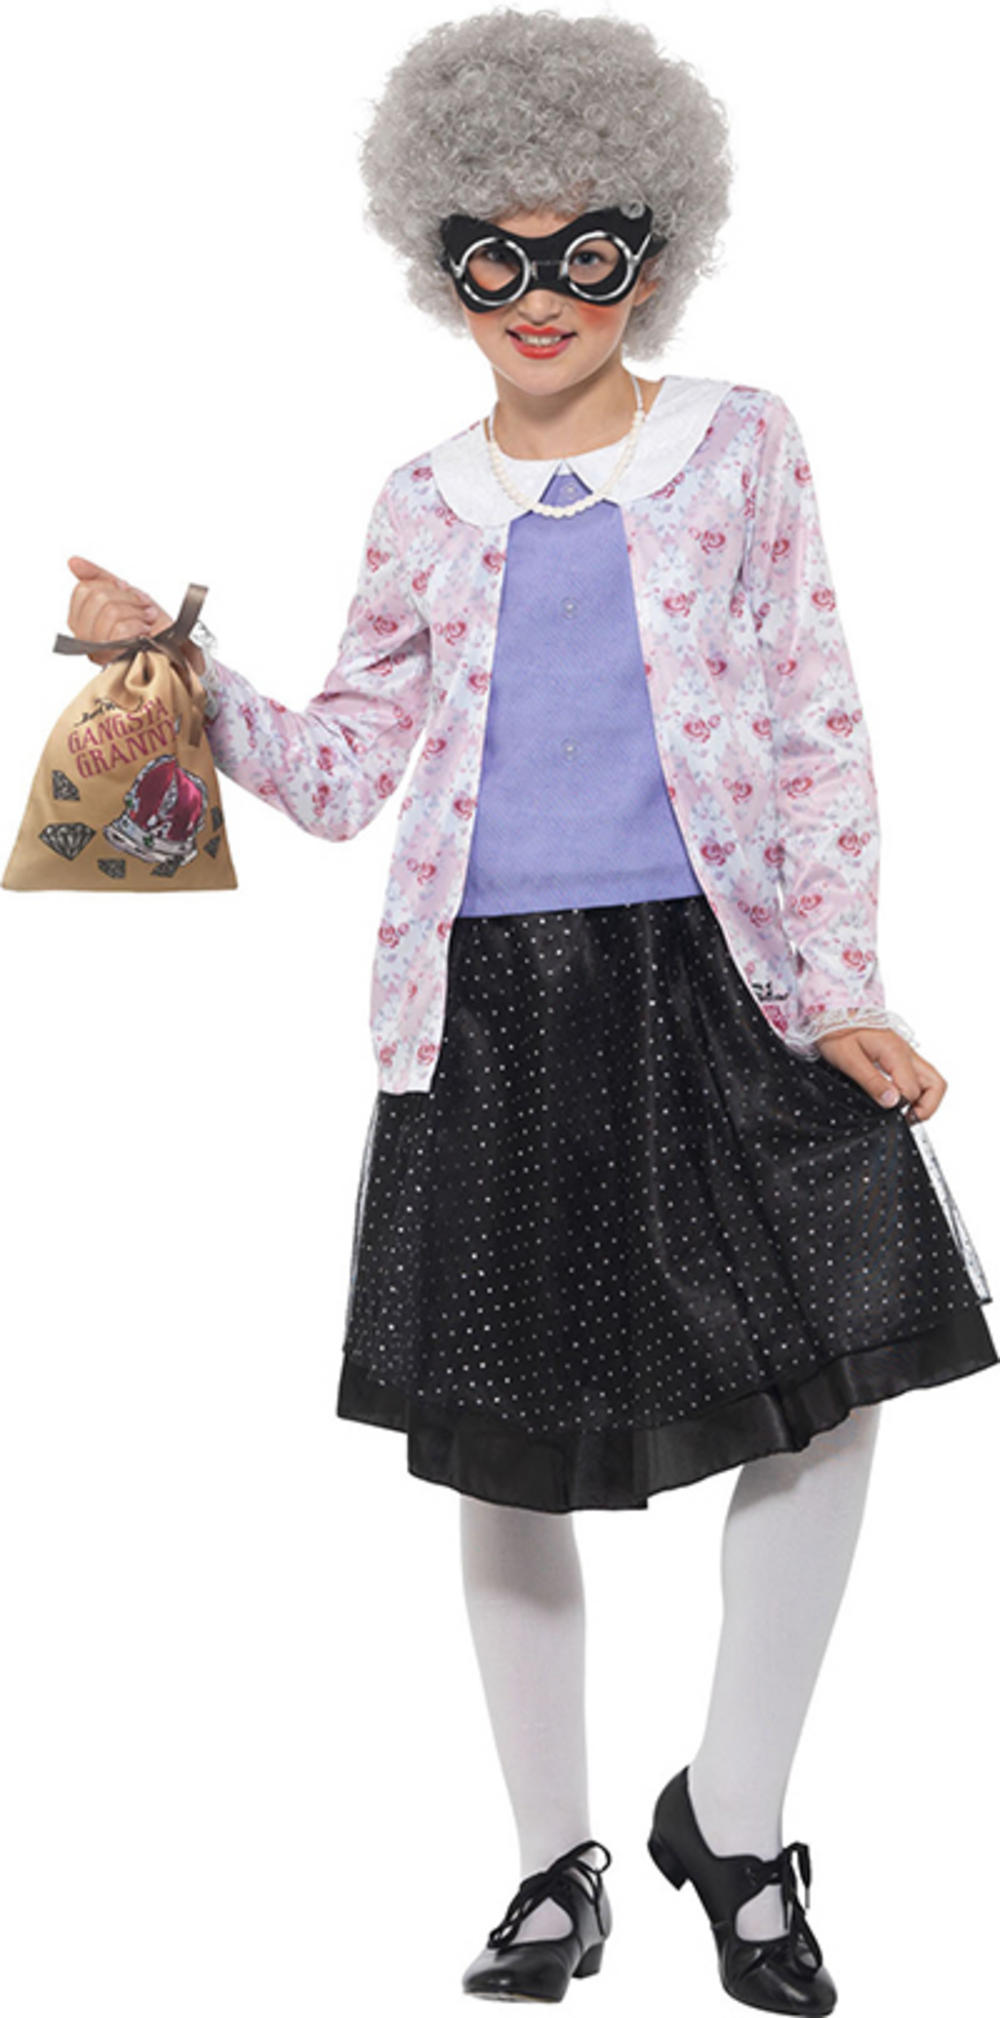 David Walliams Deluxe Gangsta Granny Girls Costume